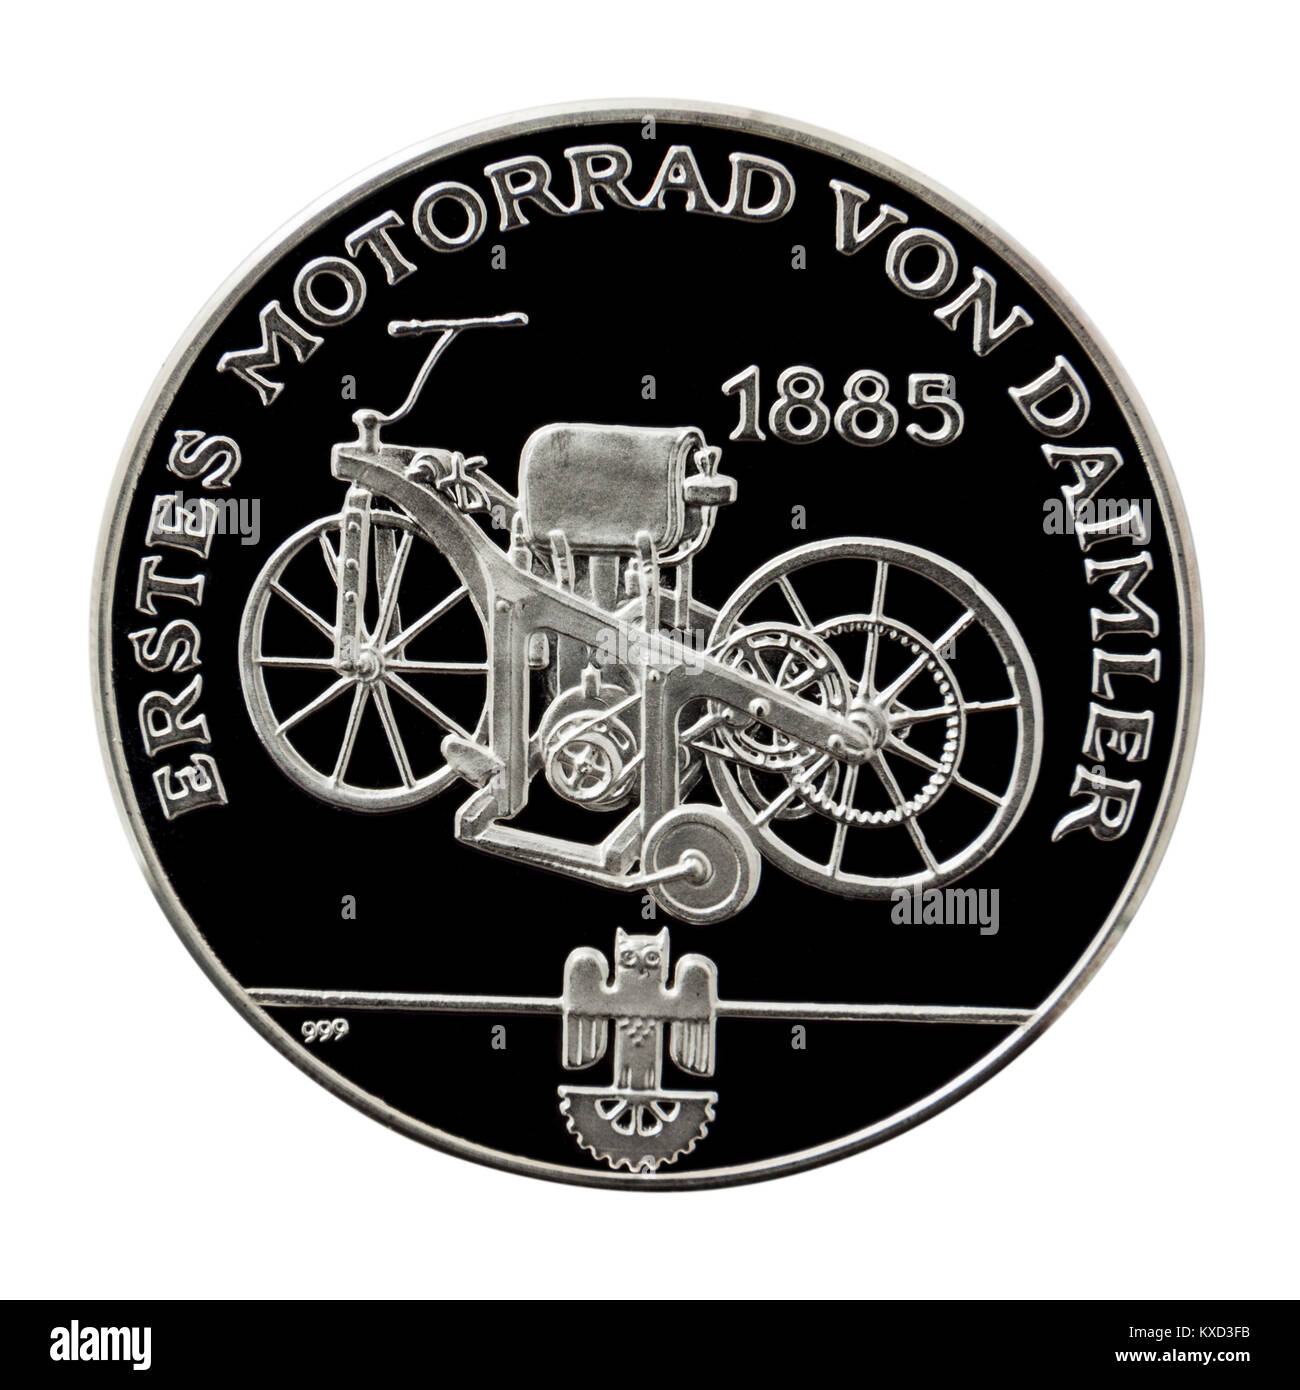 99.9% Proof Silver Medallion featuring the 1885 Daimler 'Petroleum Reitwagen', the first internal combustion - Stock Image